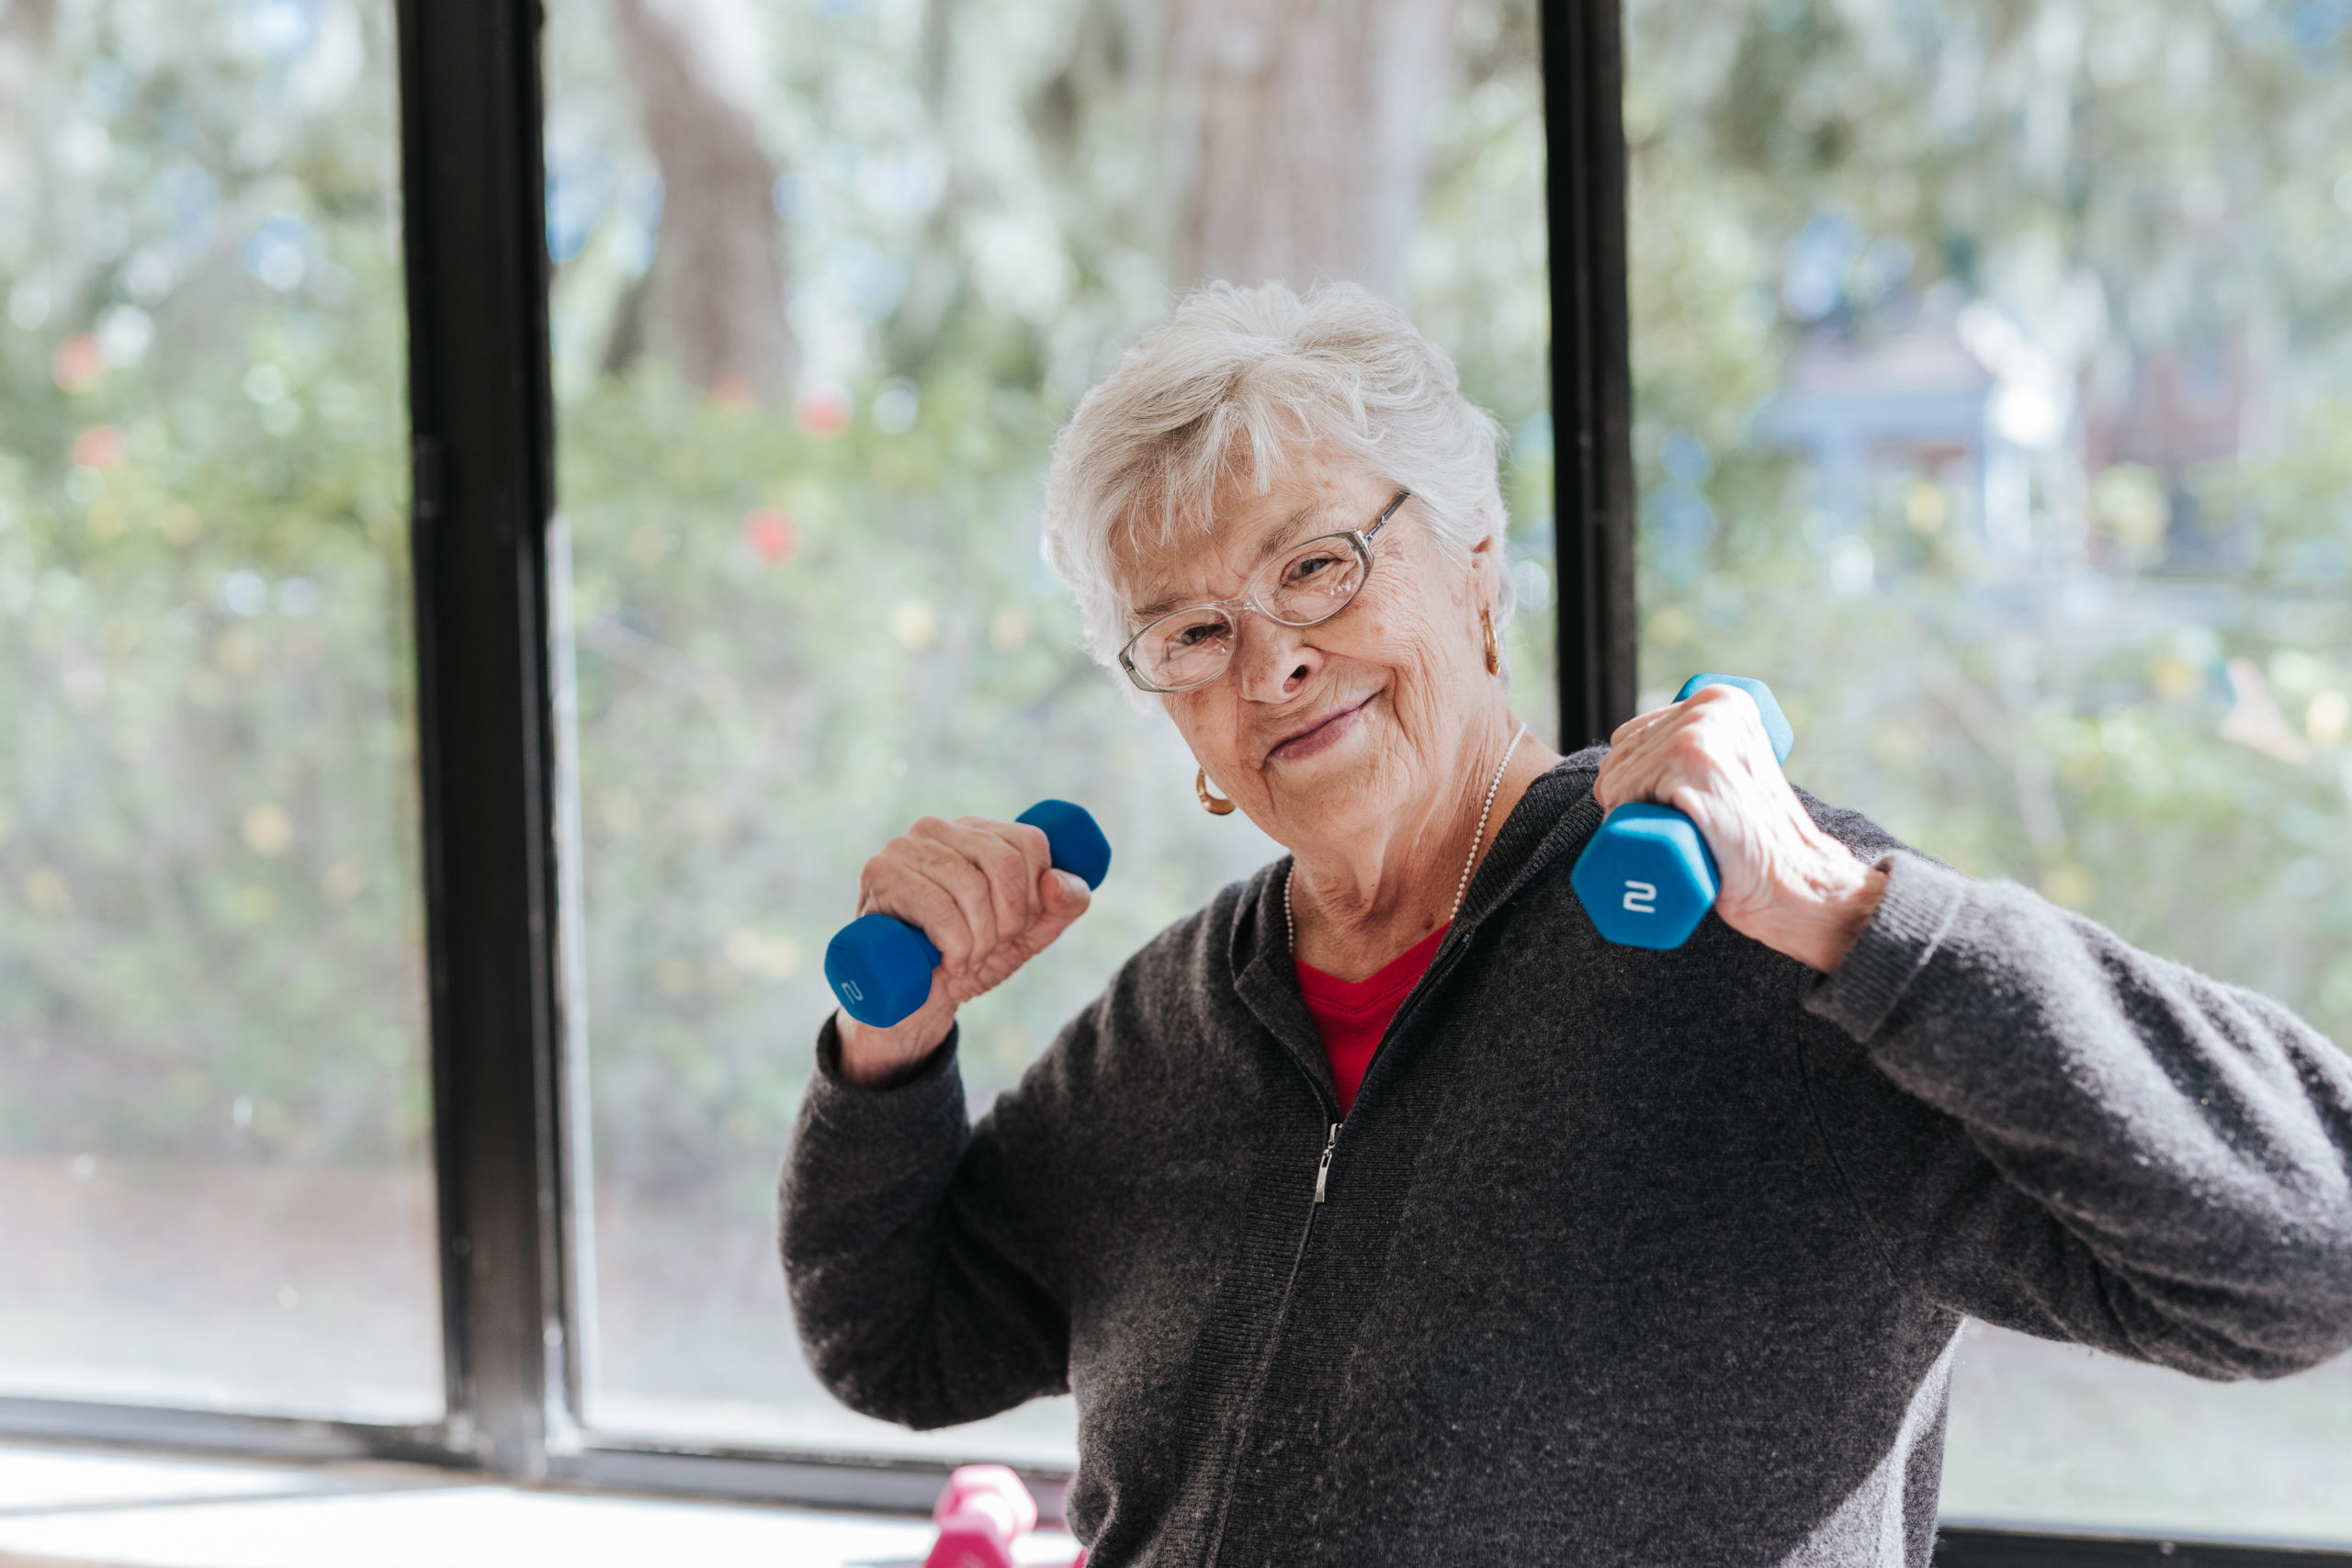 Senior Woman Holding Dumbbells